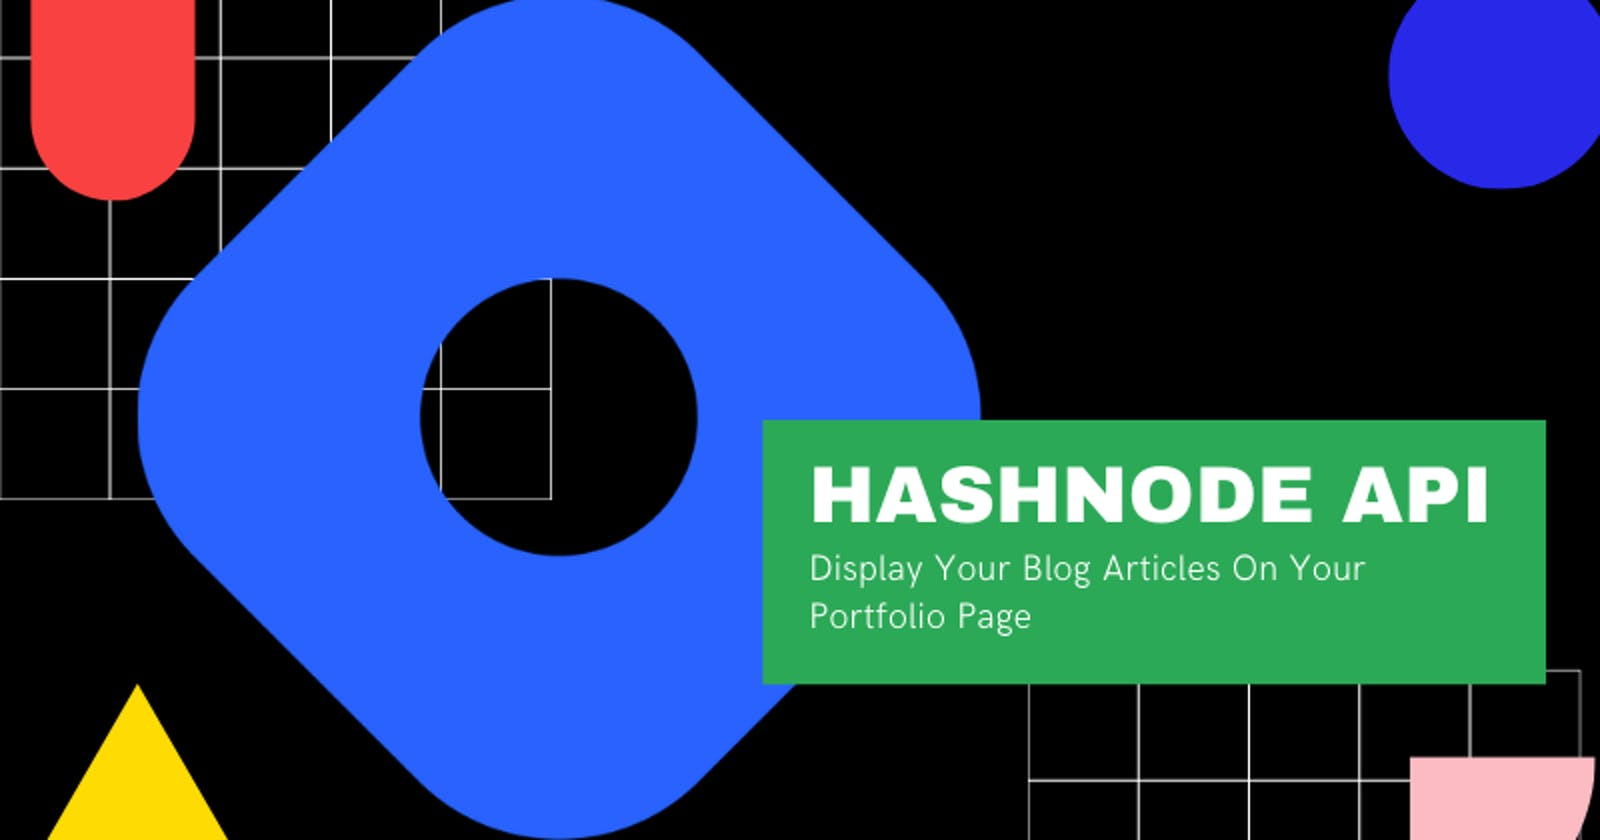 Hashnode API - How To Display Your Blog Articles On Your Portfolio Page